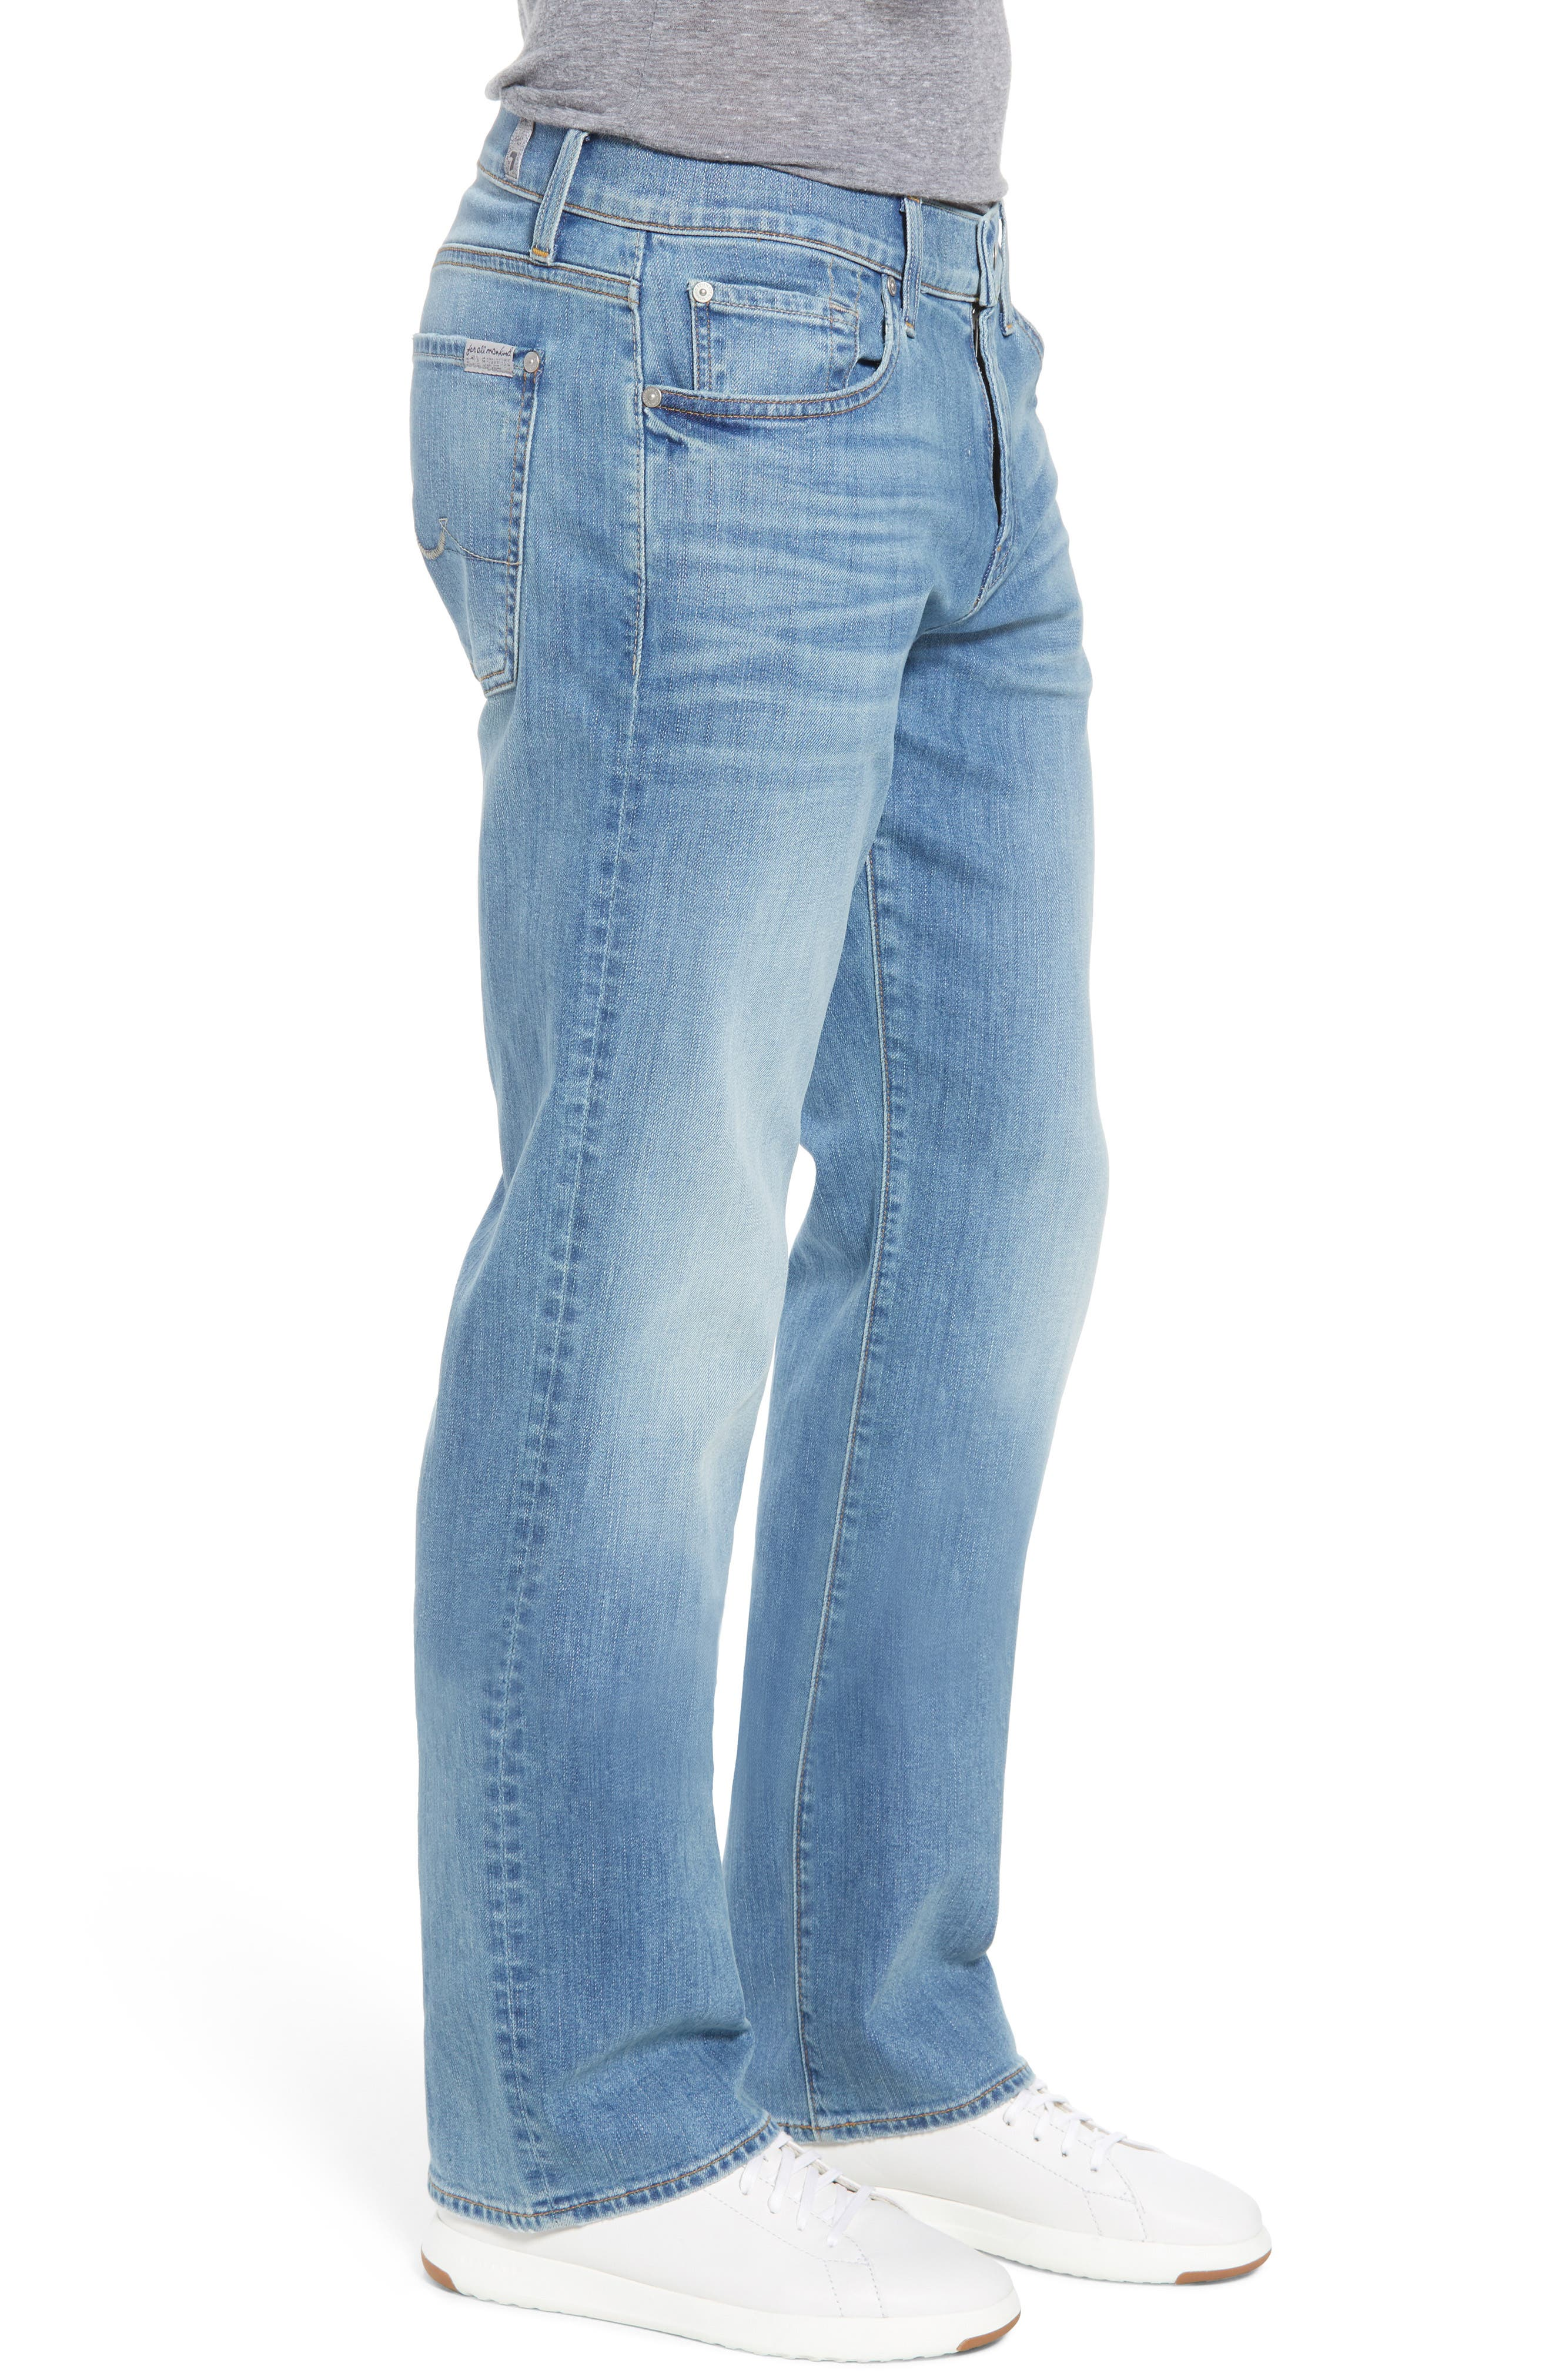 Austyn - Luxe Performance Relaxed Fit Jeans,                             Alternate thumbnail 3, color,                             Vahalla